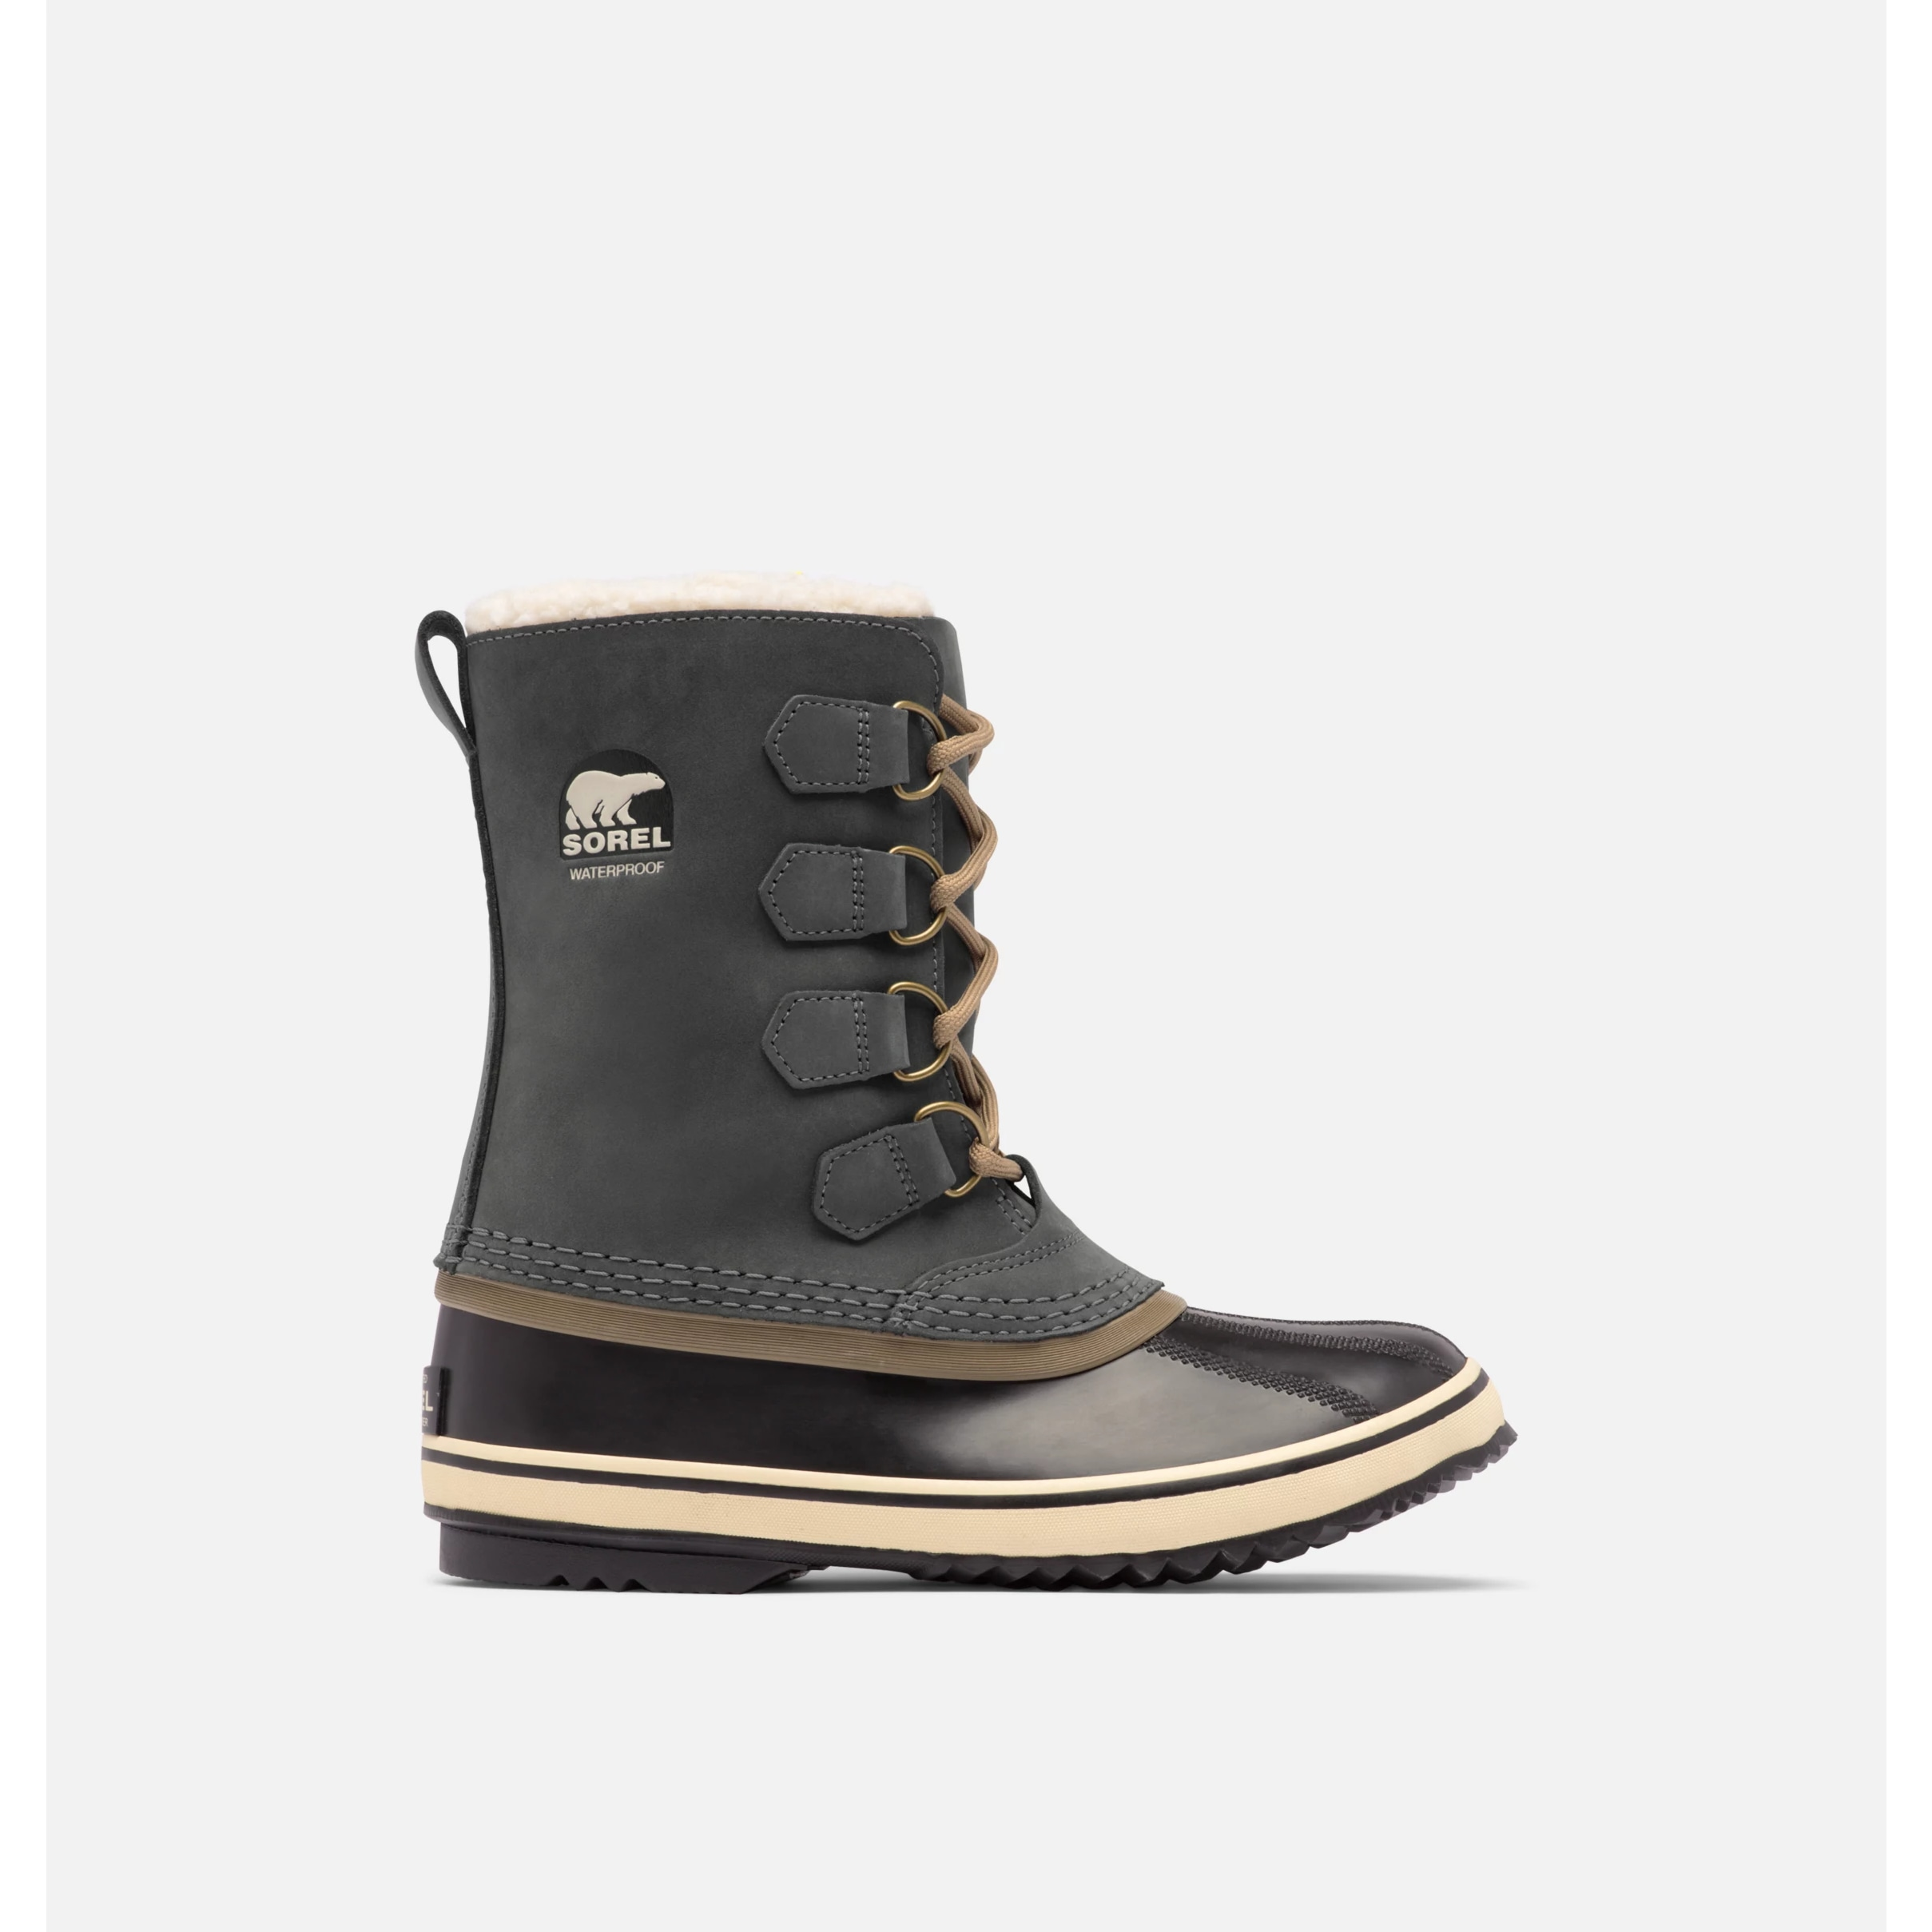 1964 PAC 2 Boot - Women's